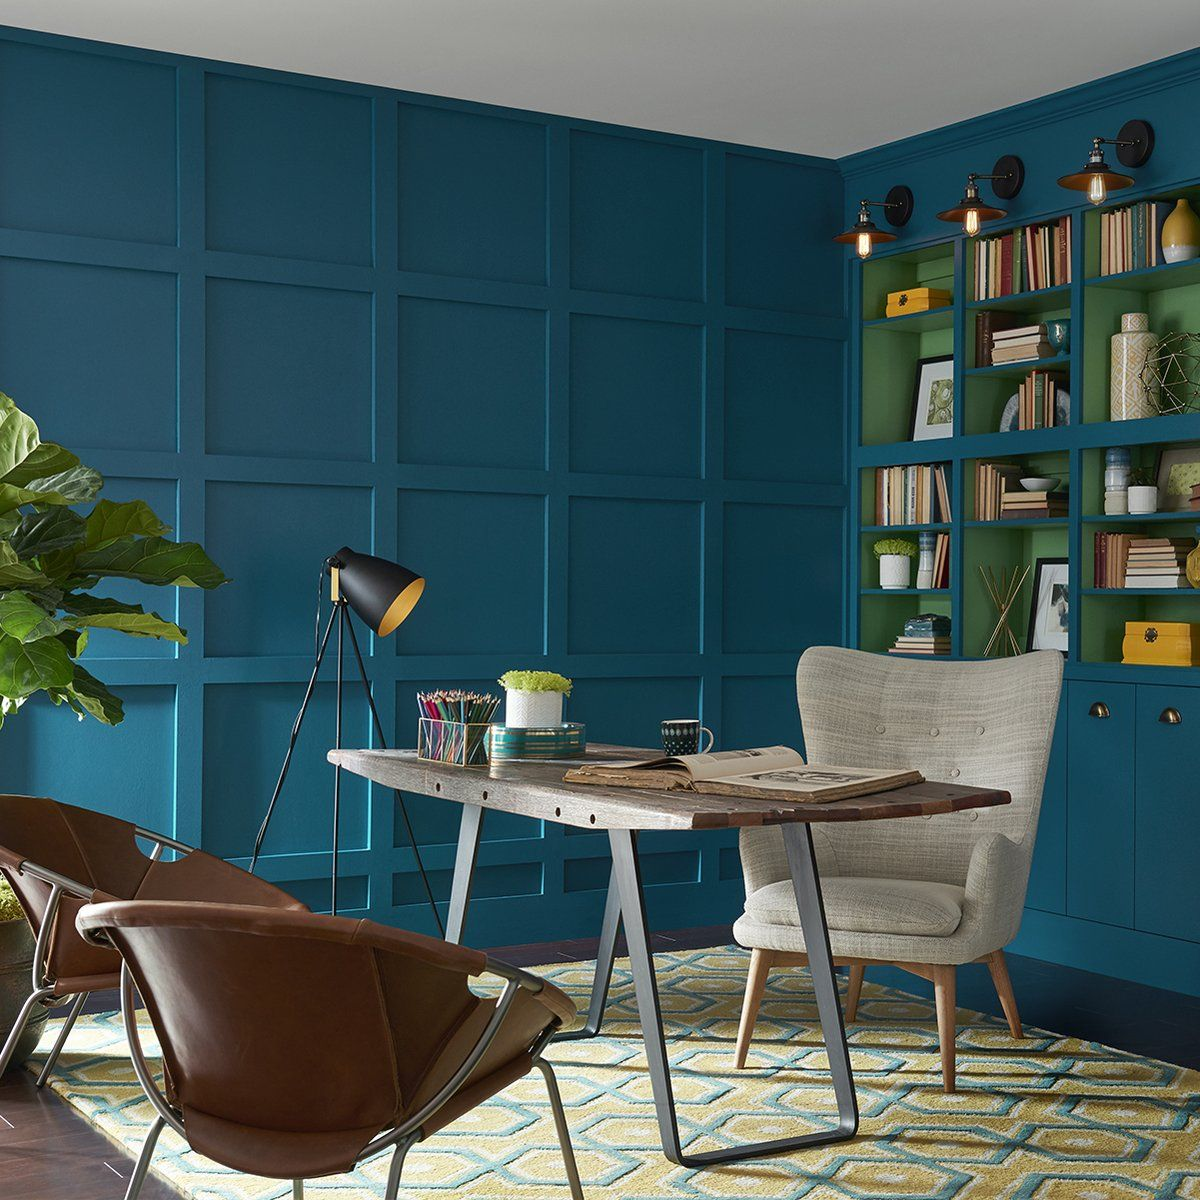 Introducing the SherwinWilliams Color of the Year 2018